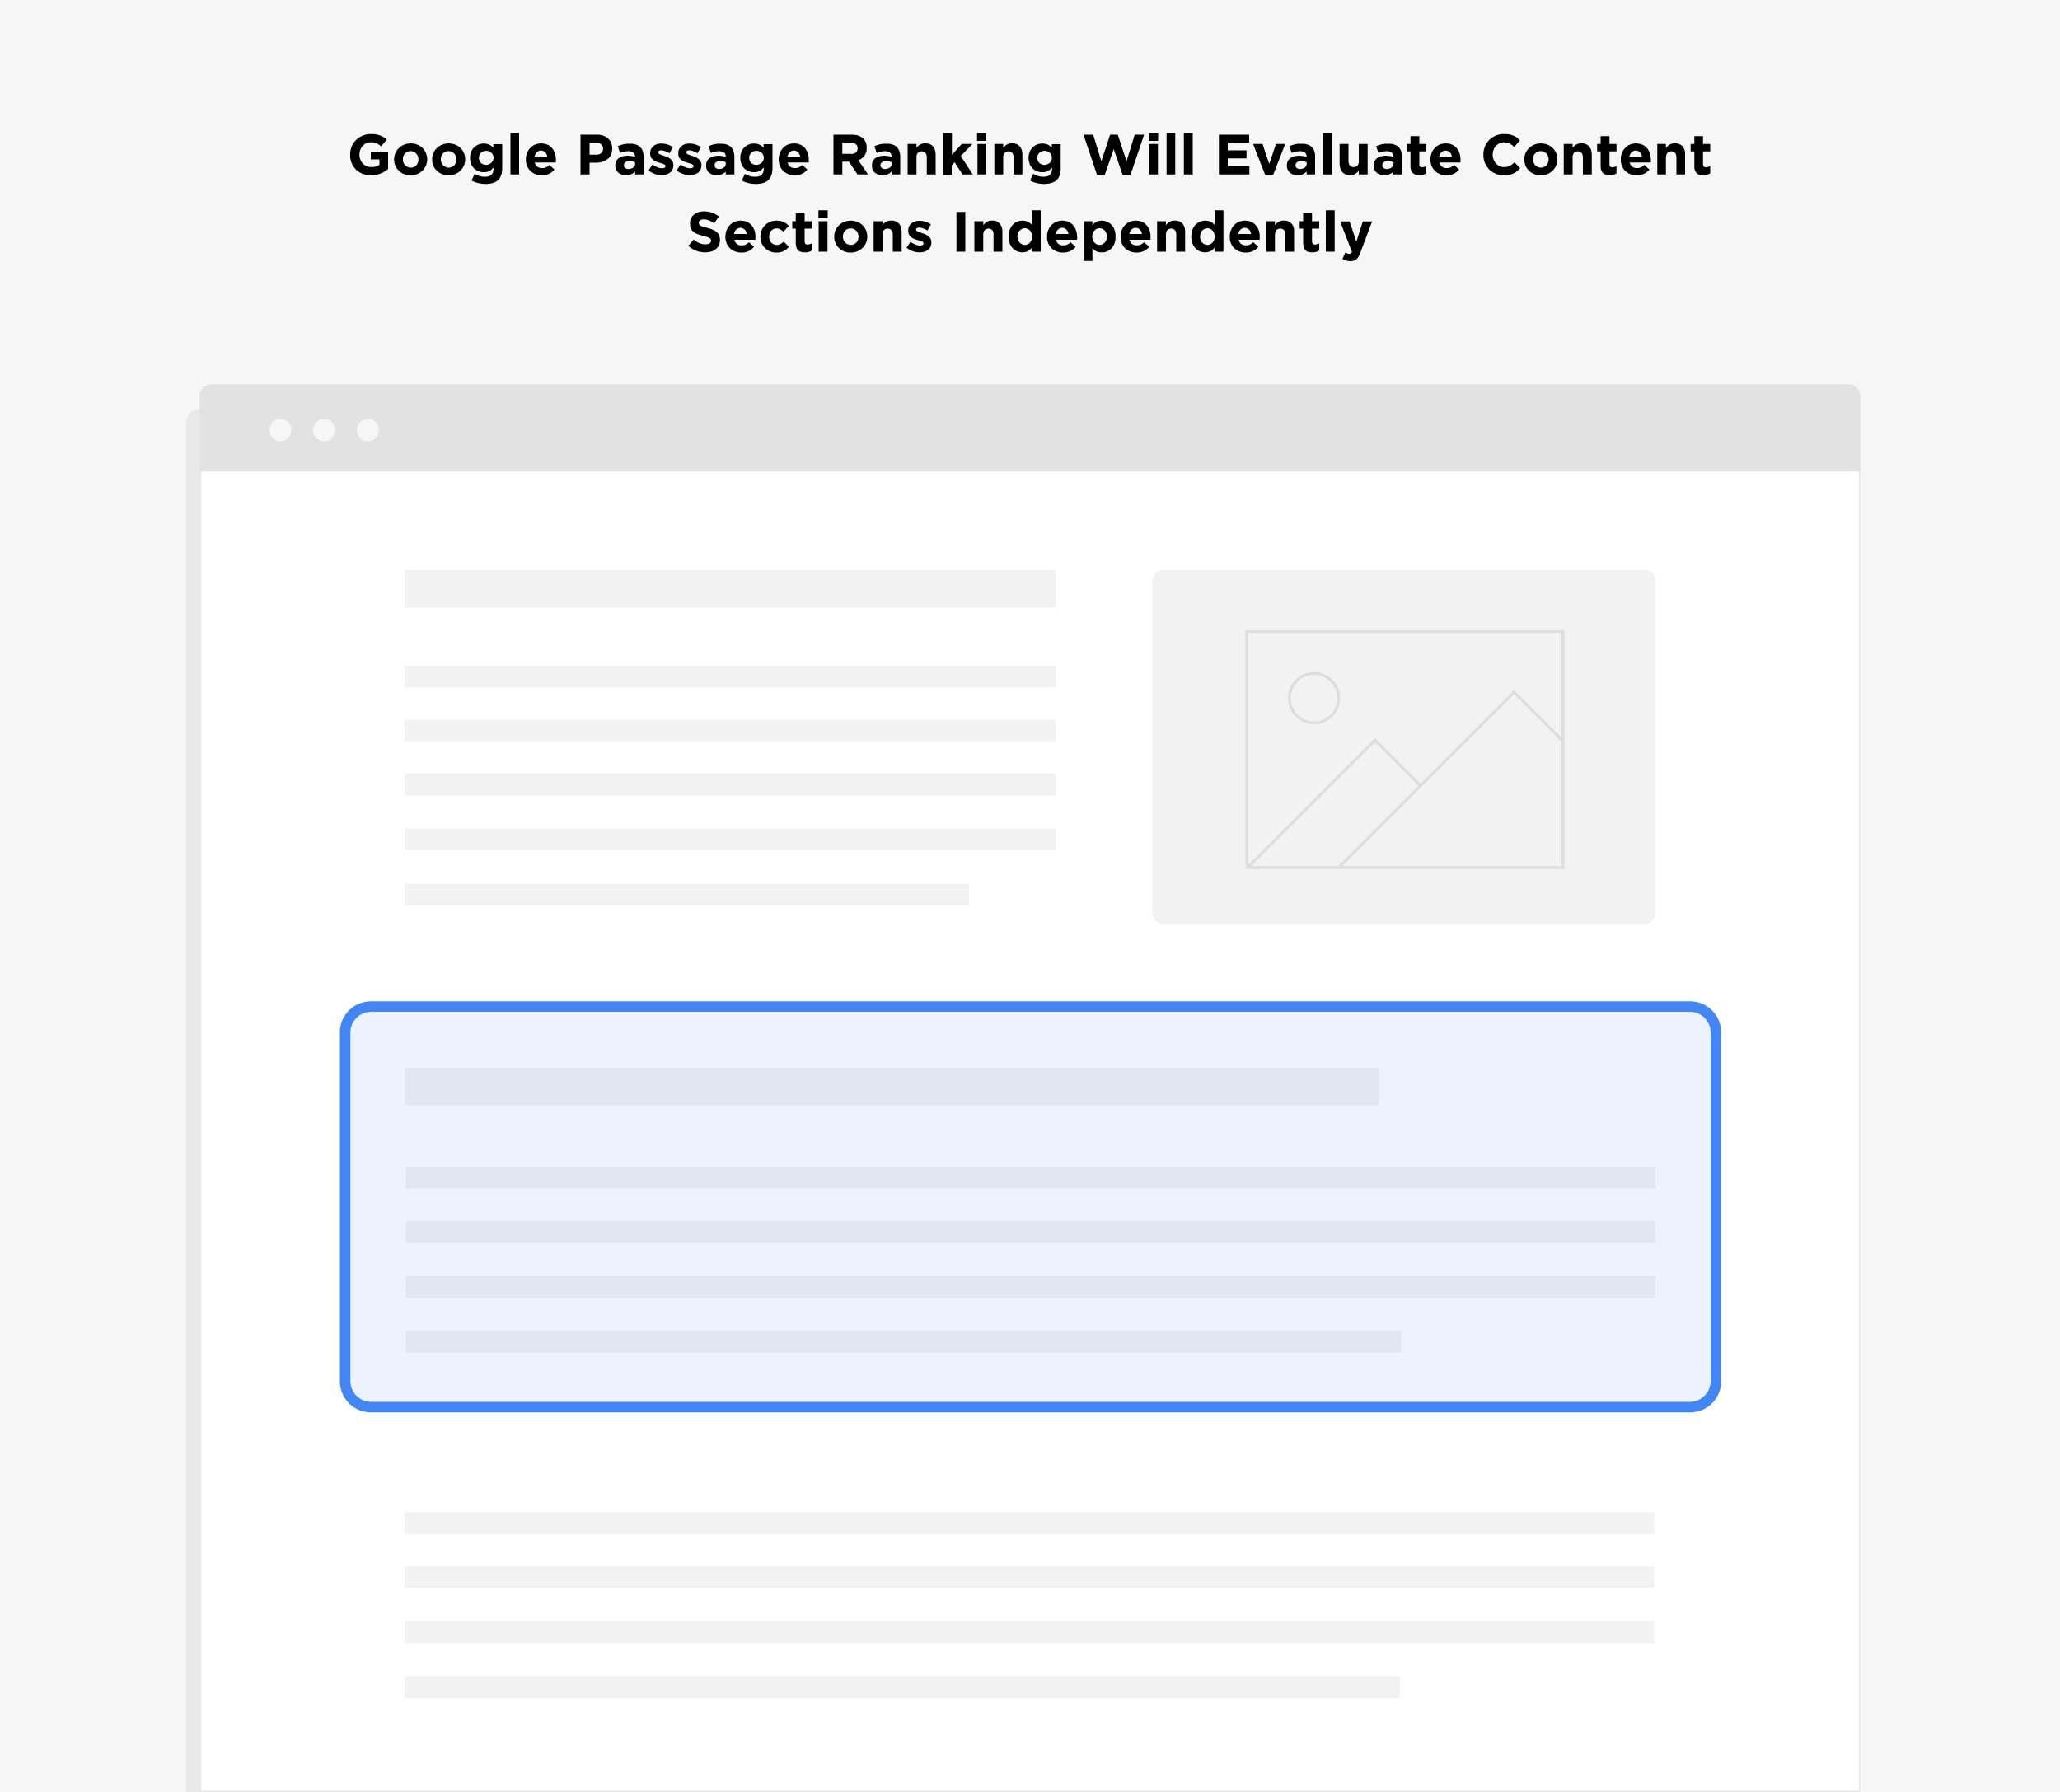 Google passage ranking will evaluate content sections independently